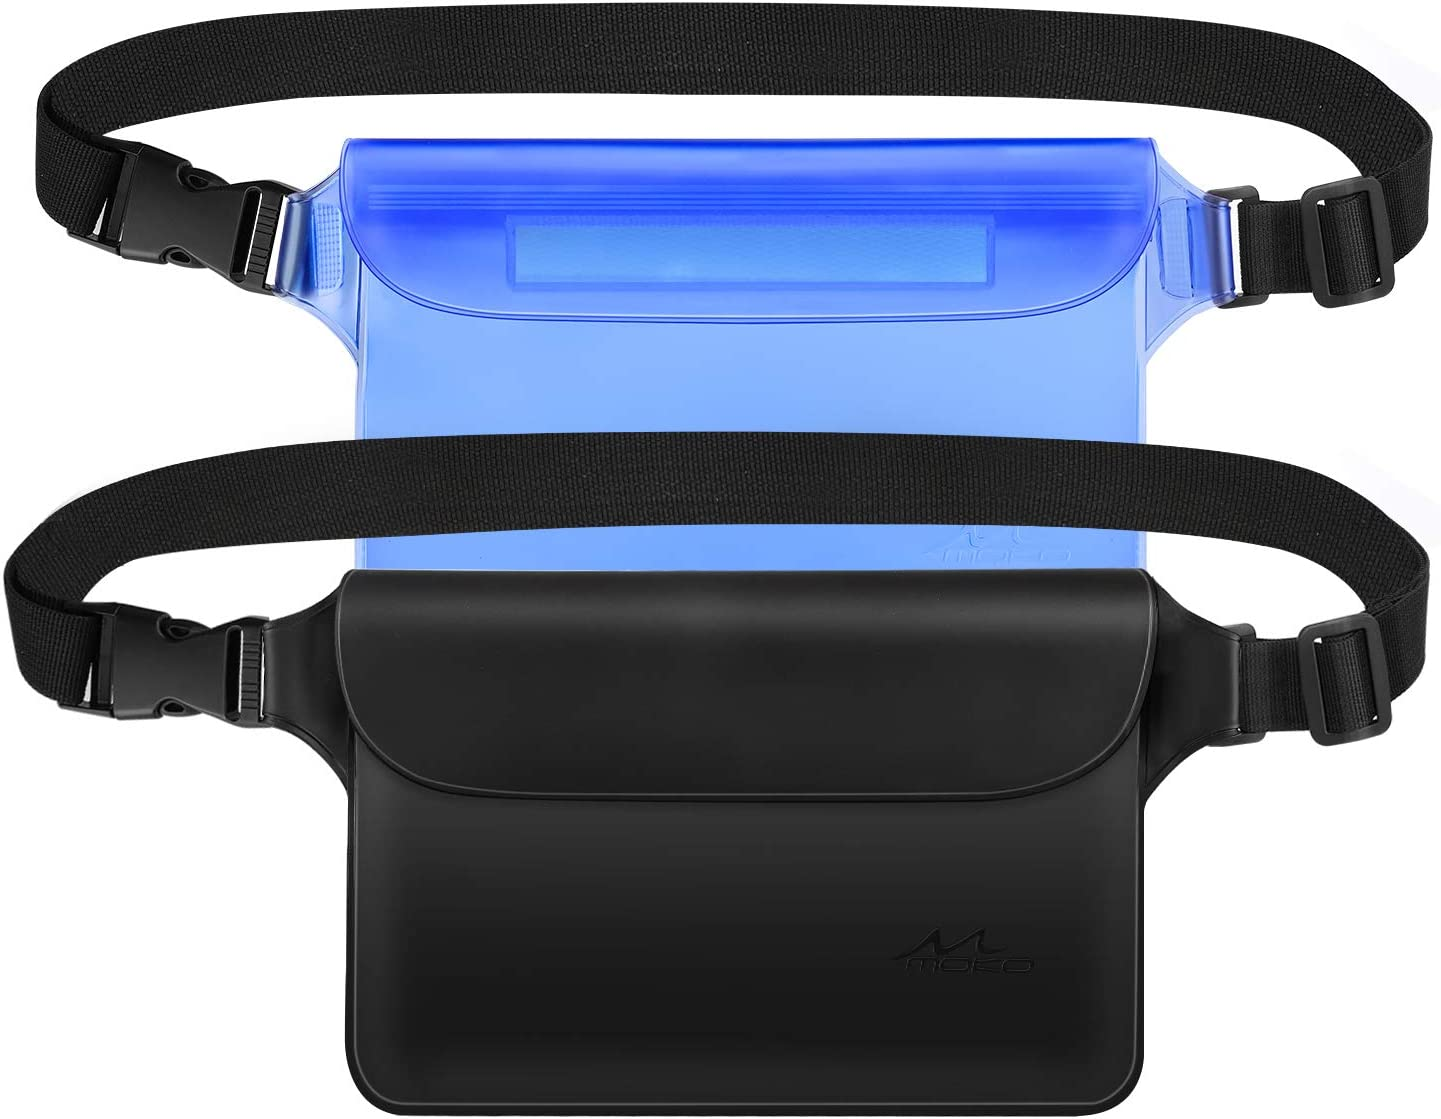 Discount mail order MoKo Waterproof Waist Bag Fanny Attention brand Pouch Pack 2